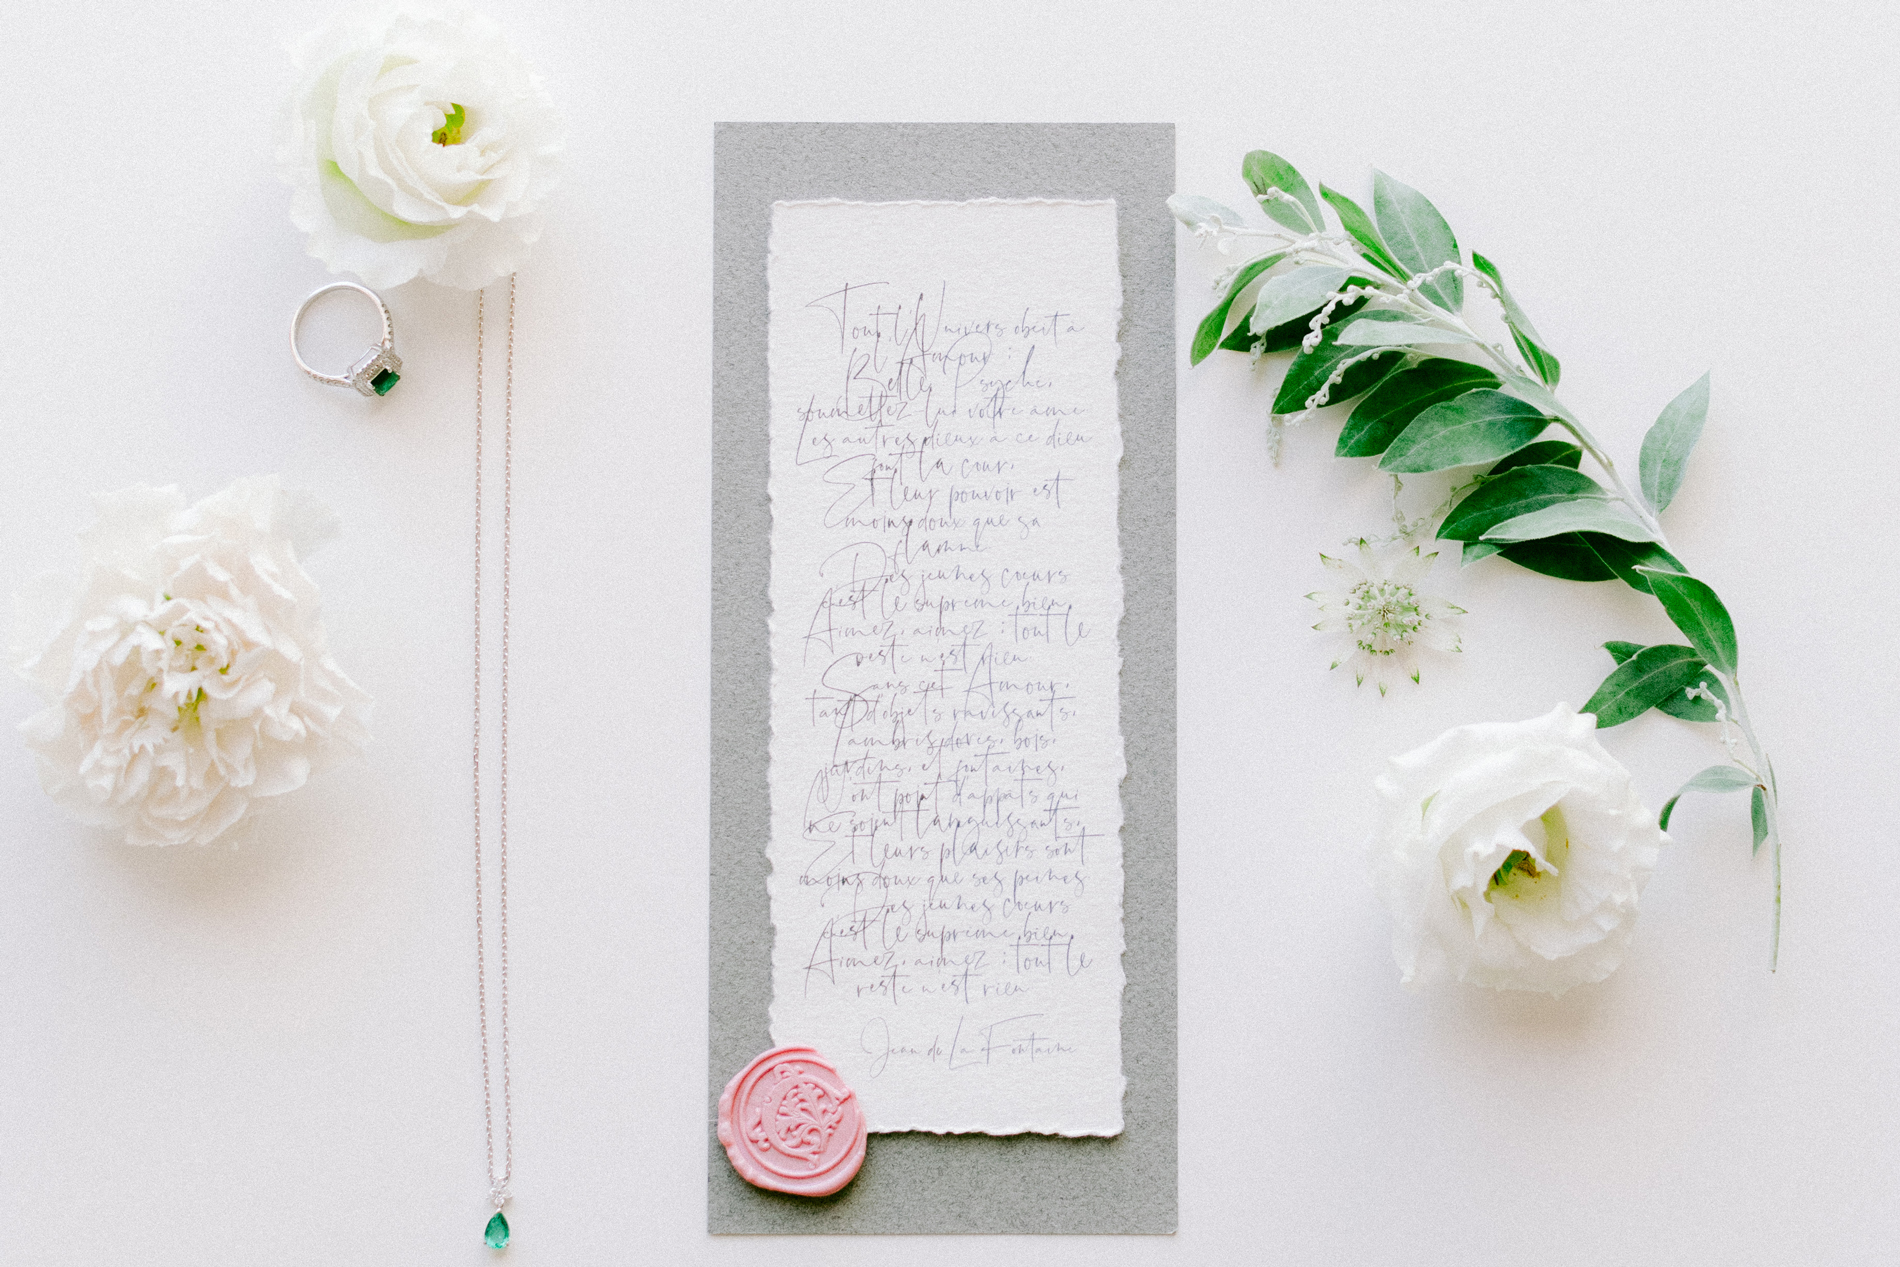 pre-written wedding vows on rough edged paper with wax seal